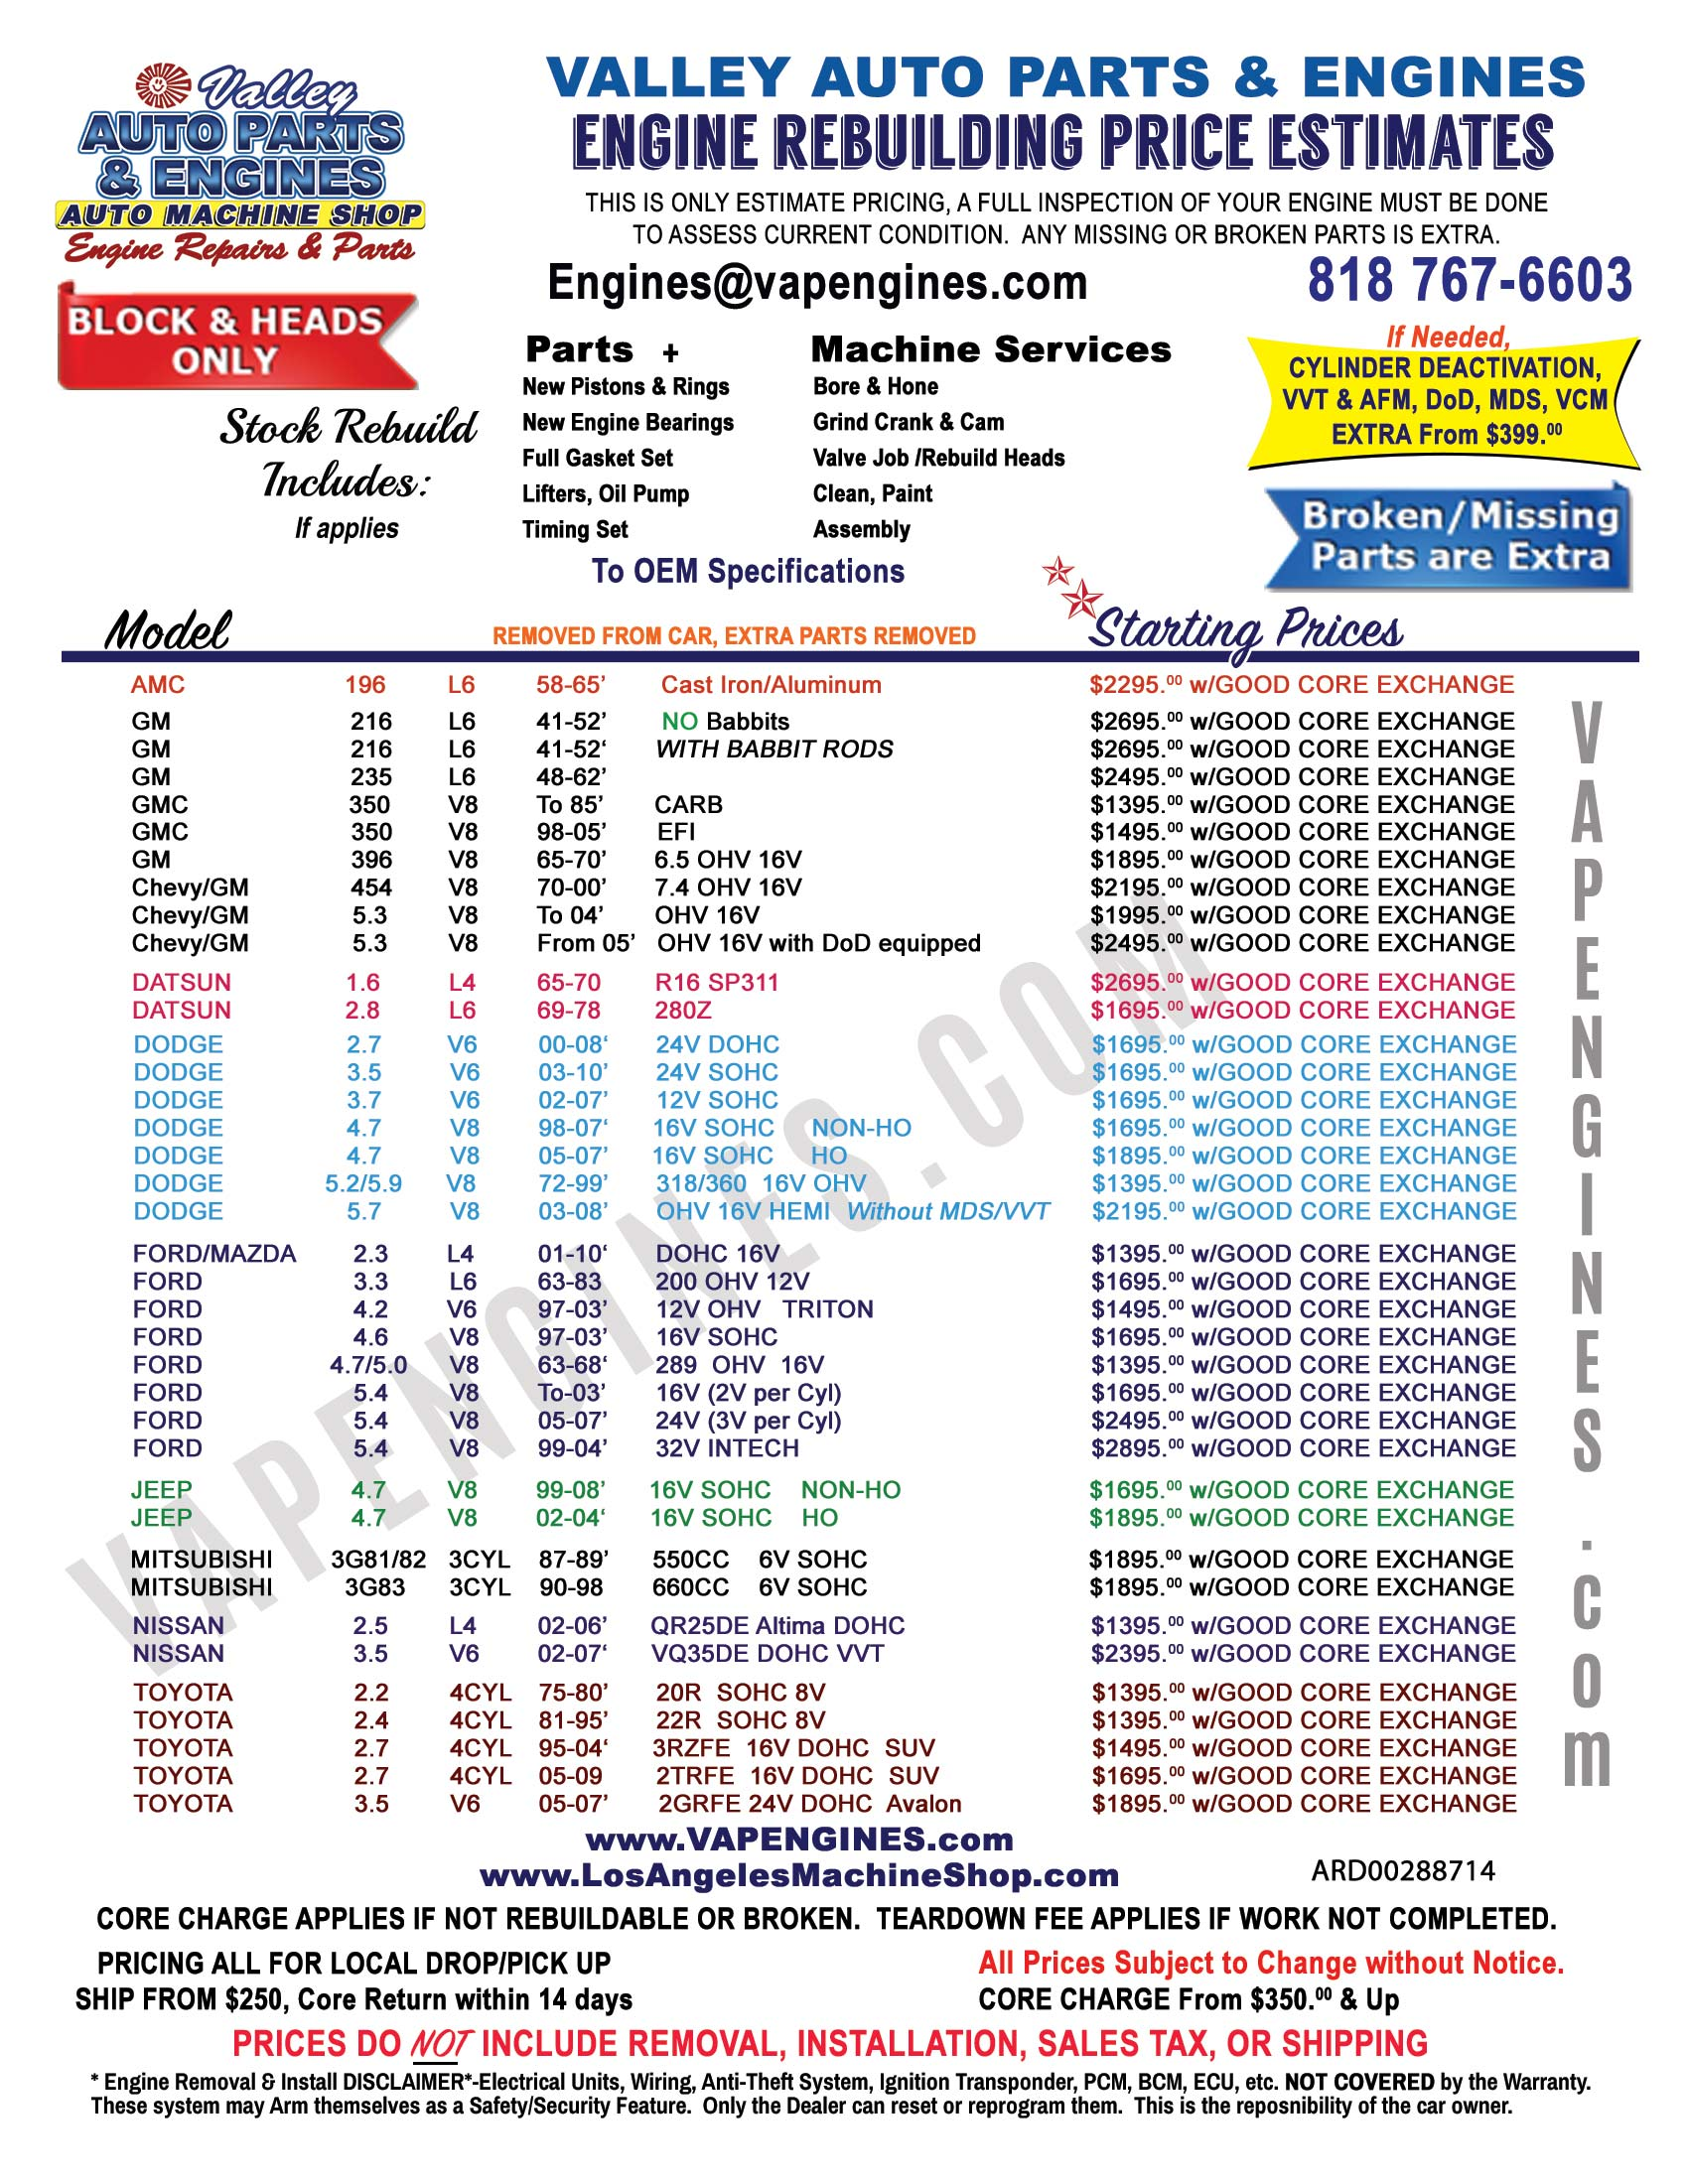 Engine Rebuild Cost Price Estimate Sheet